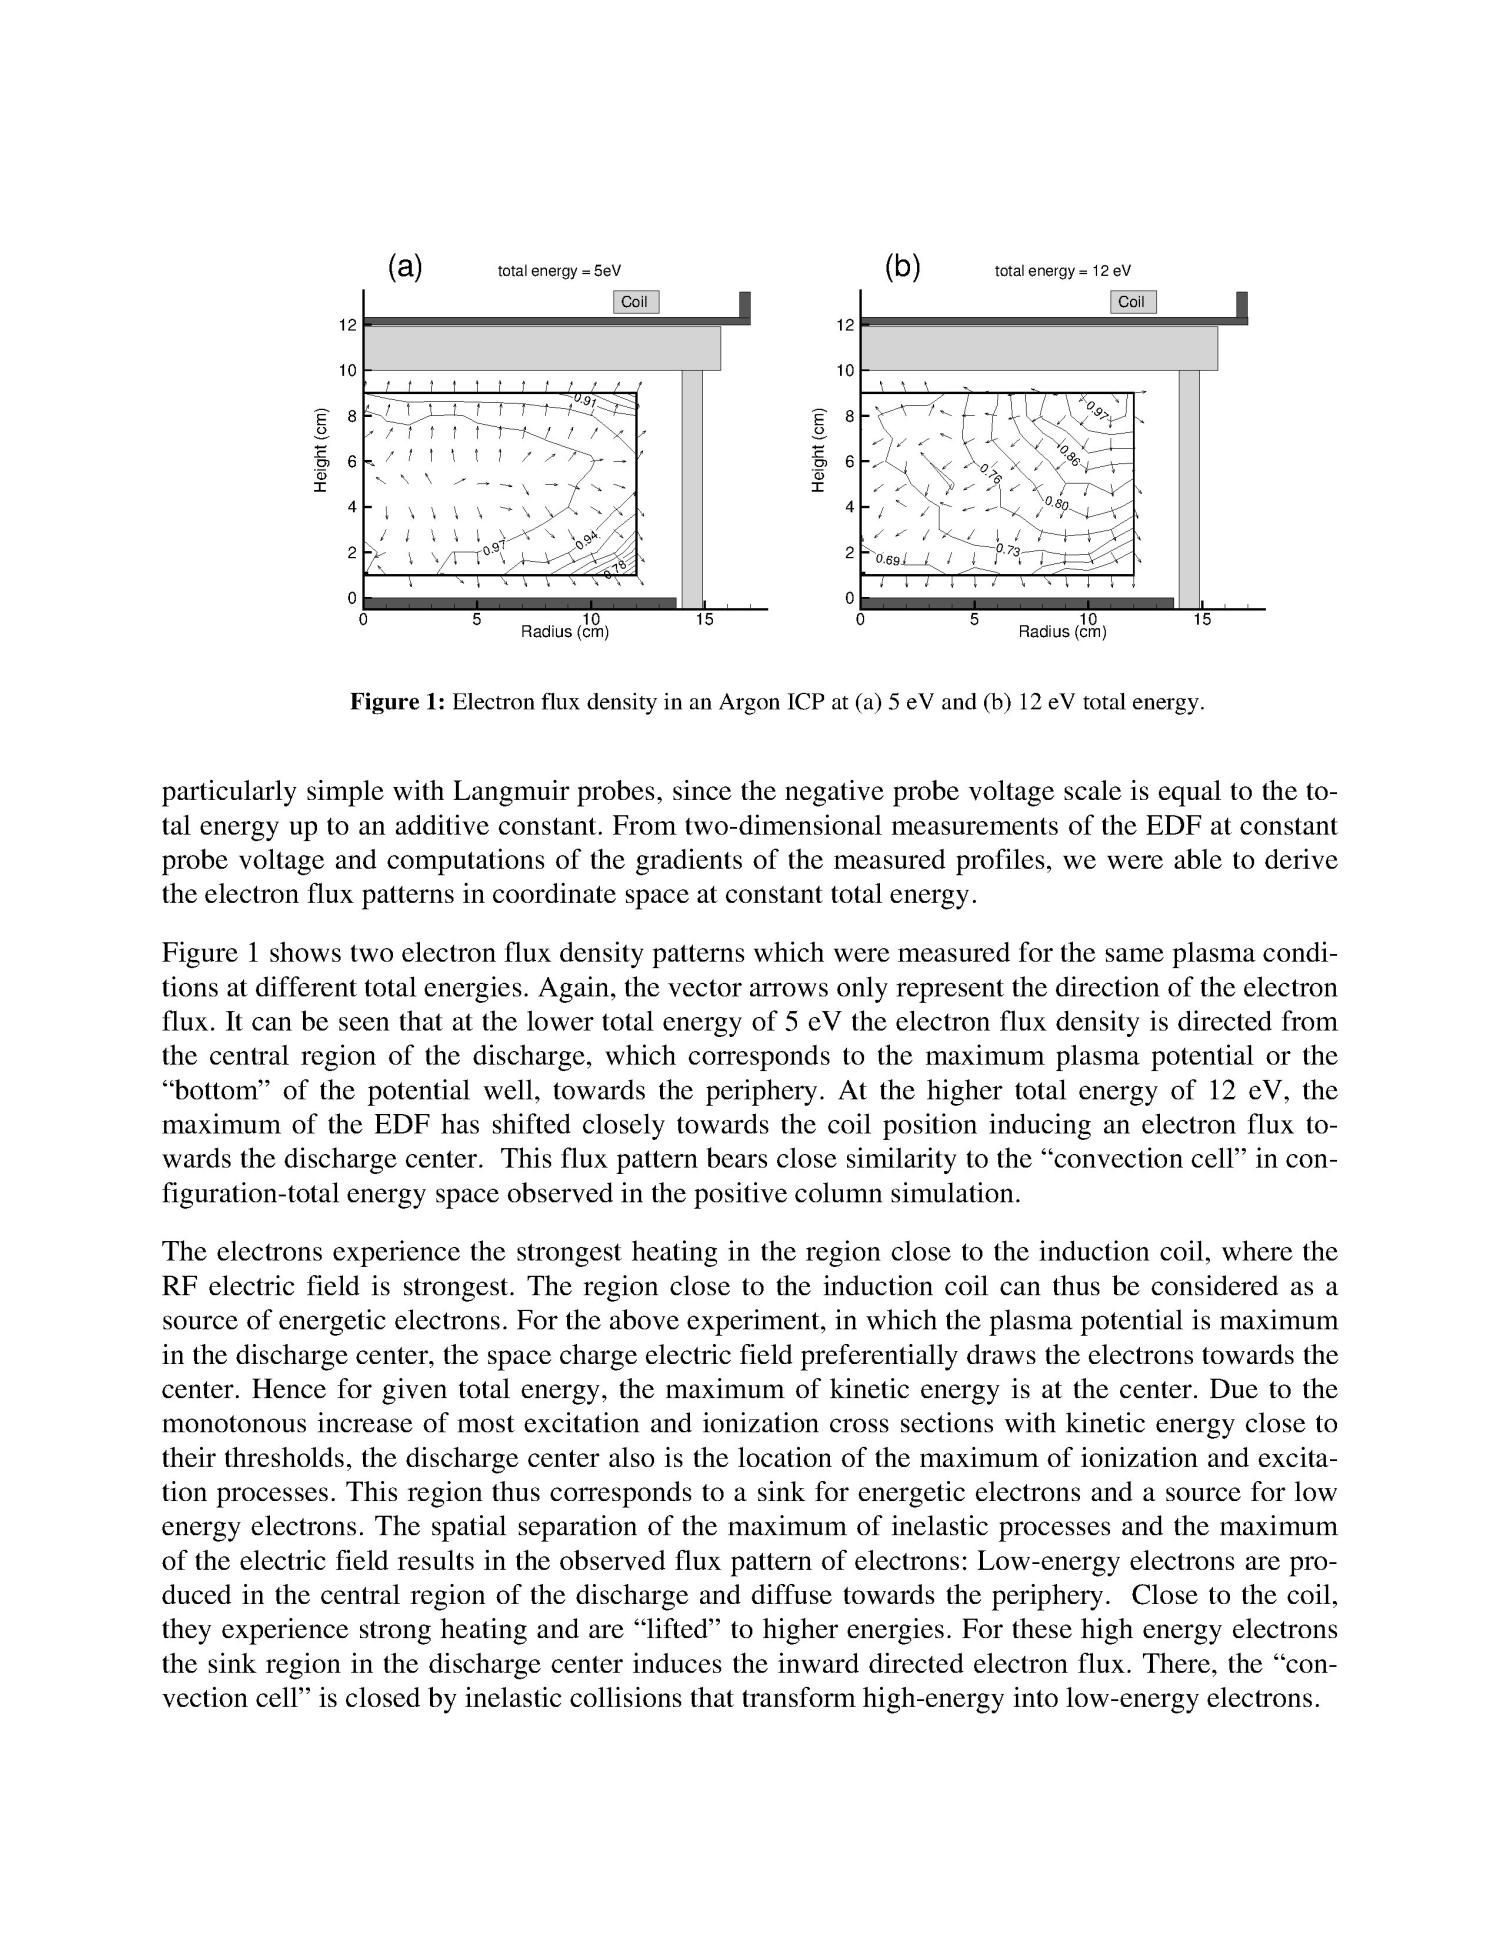 Final Report for Award DE-FG02-99ER54554 Kinetics of Electron Fluxes in Low-Pressure Nonthermal Plasmas                                                                                                      [Sequence #]: 2 of 6